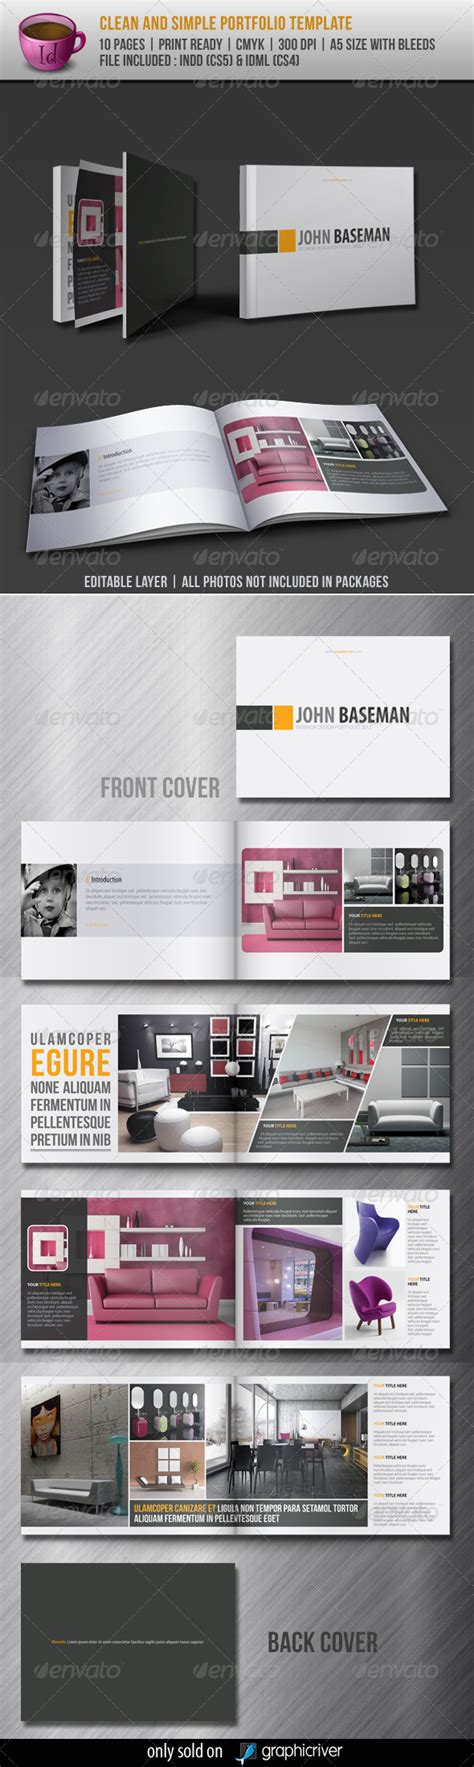 Clean And Simple Portfolio Template By Dee46 Graphicriver Portfolio Layout Template Indesign